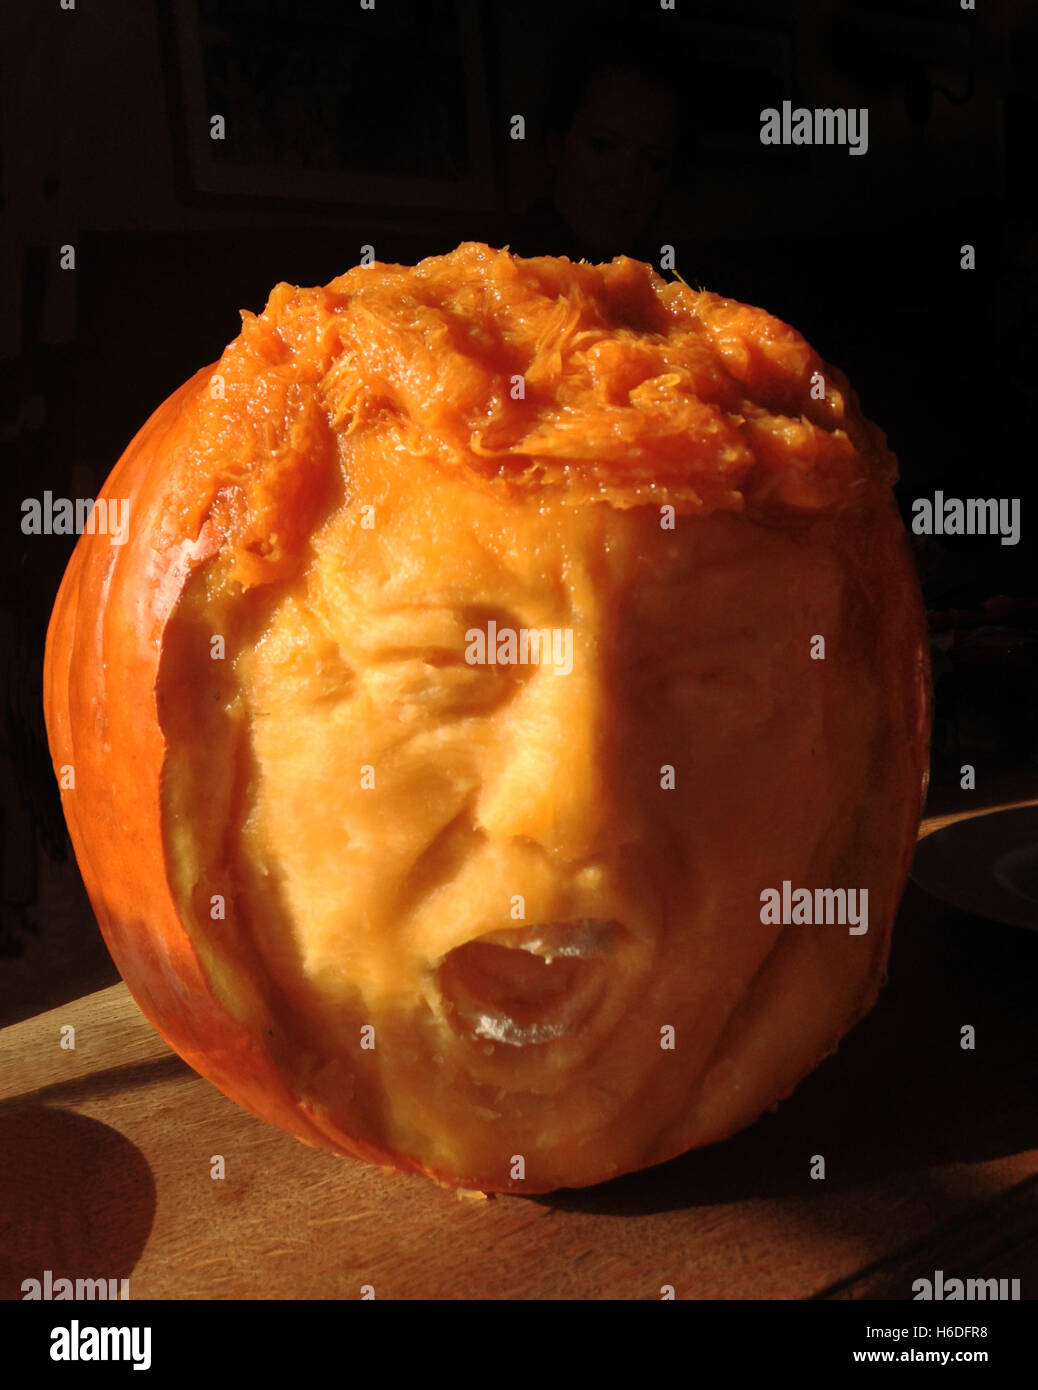 Cambridge, UK. 22nd October, 2016. TRUMPKIN. Image released 27th of October, 2016. Donald Trump screaming carved - Stock Image